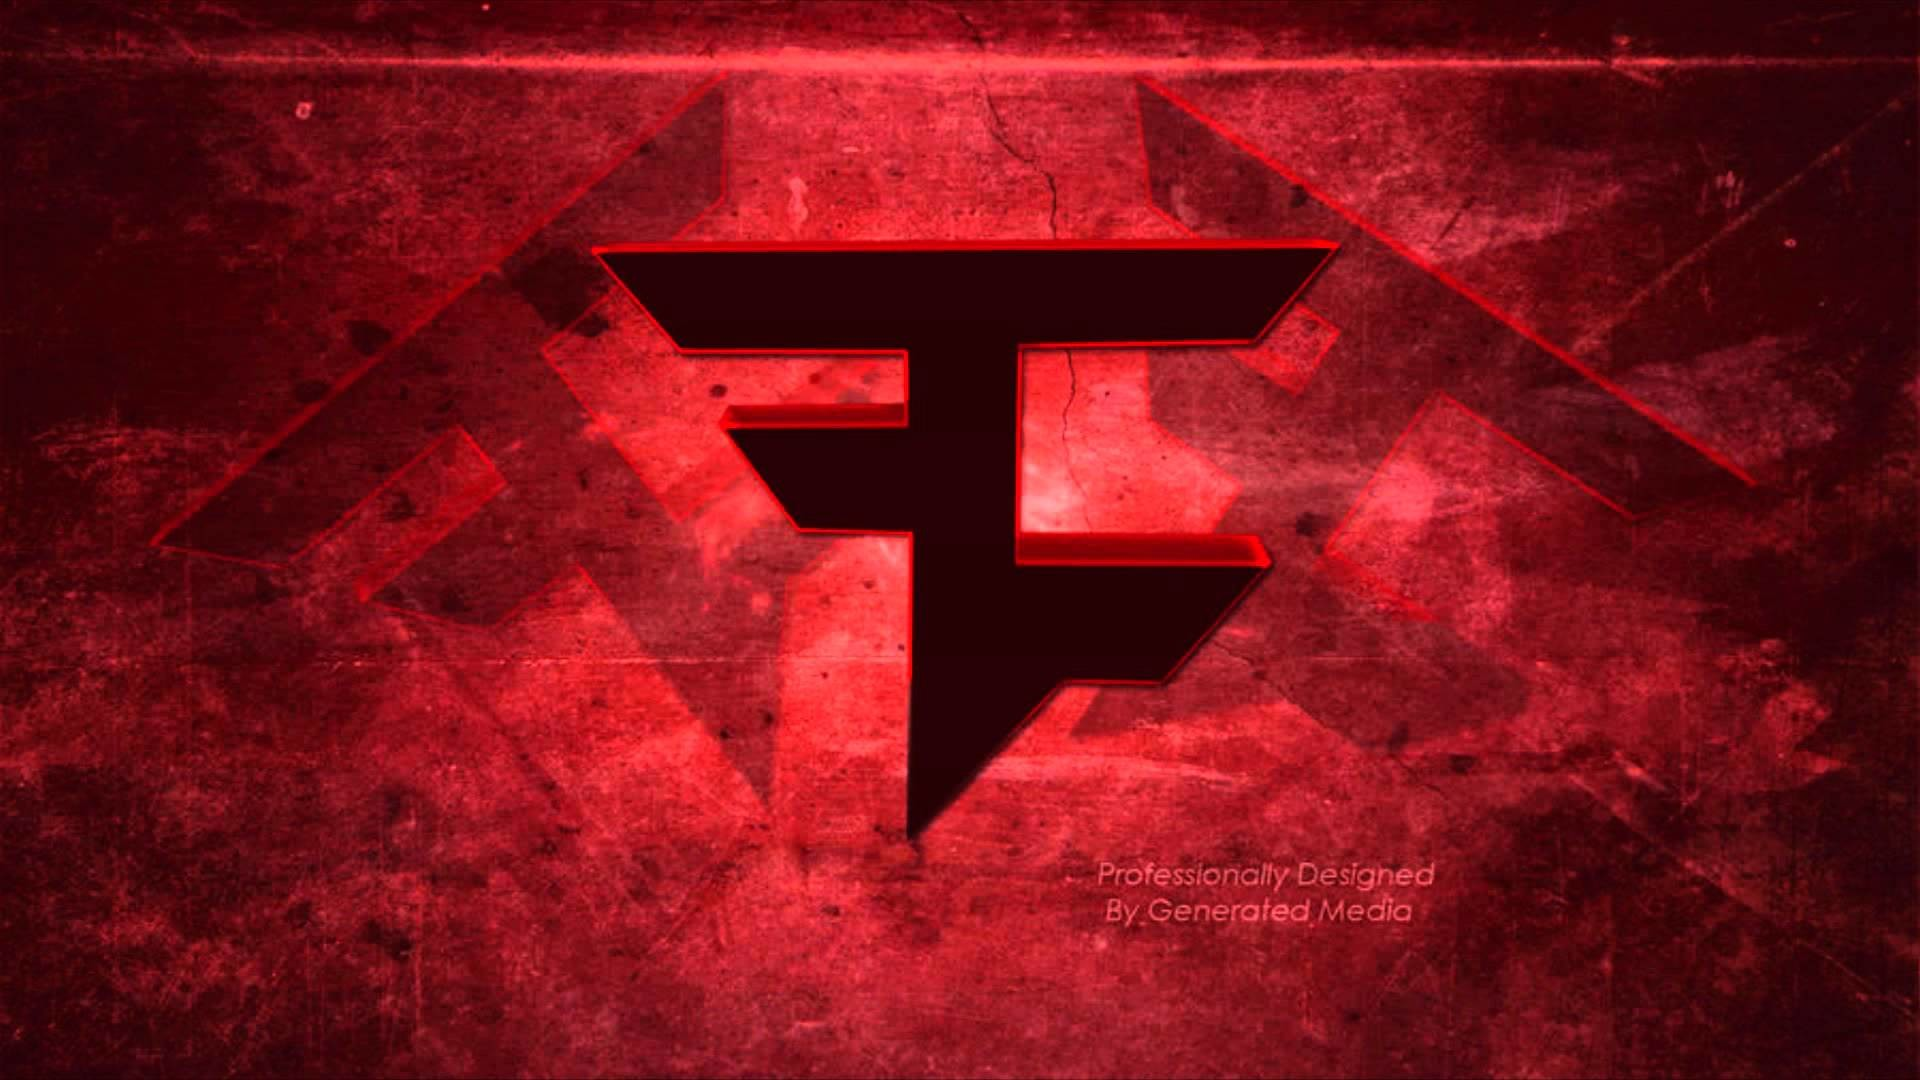 Sick Wallpapers For Iphone 6 Faze Clan Wallpaper Pack V4 86 Images